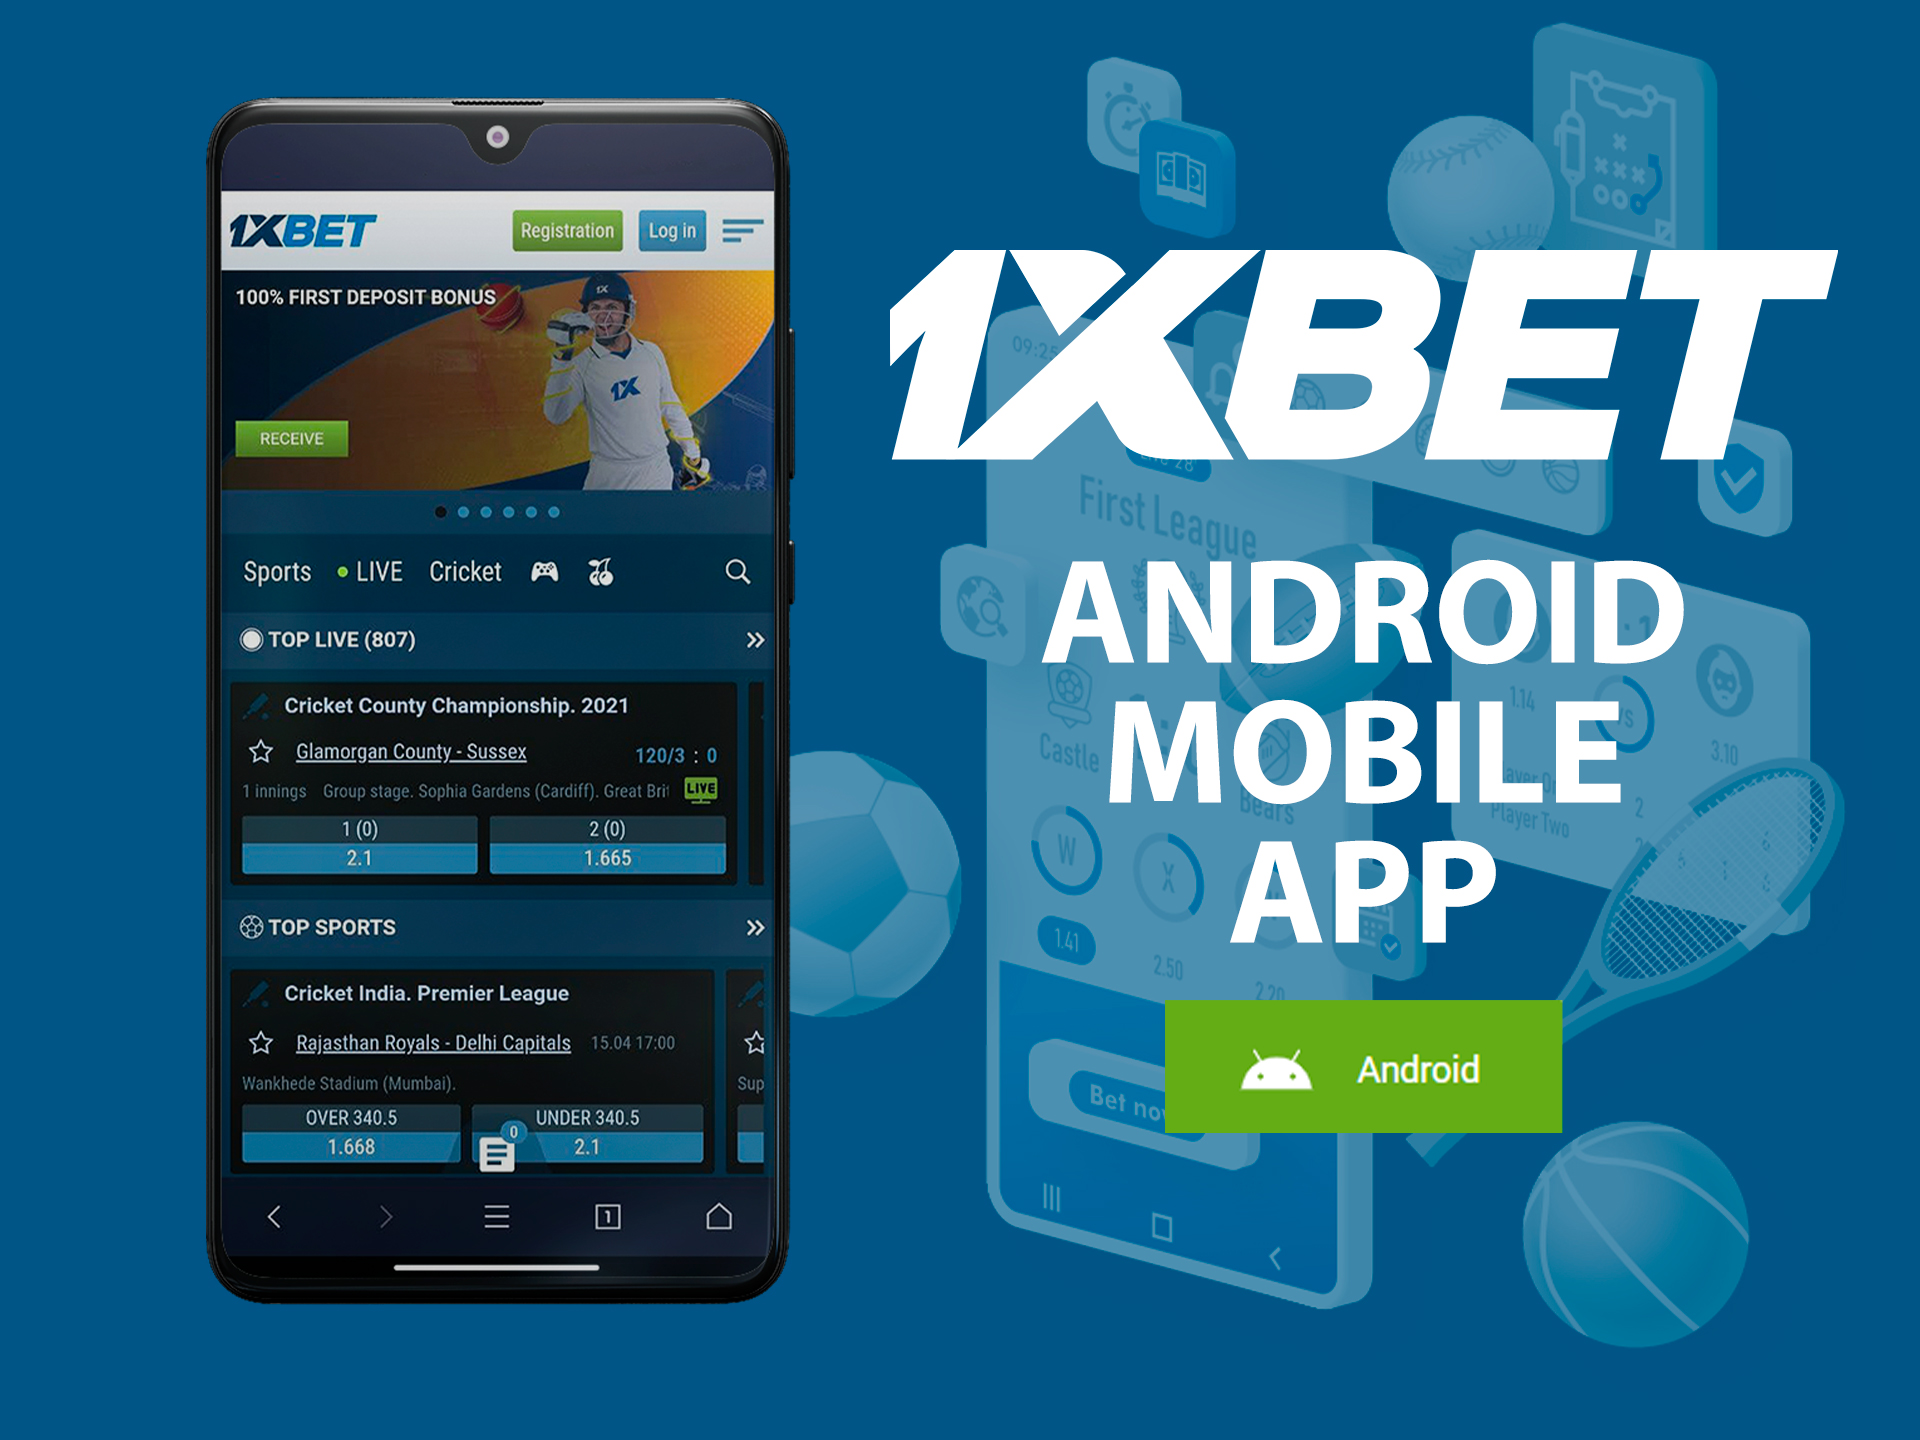 1xBet mobile sports betting app for Android devices.